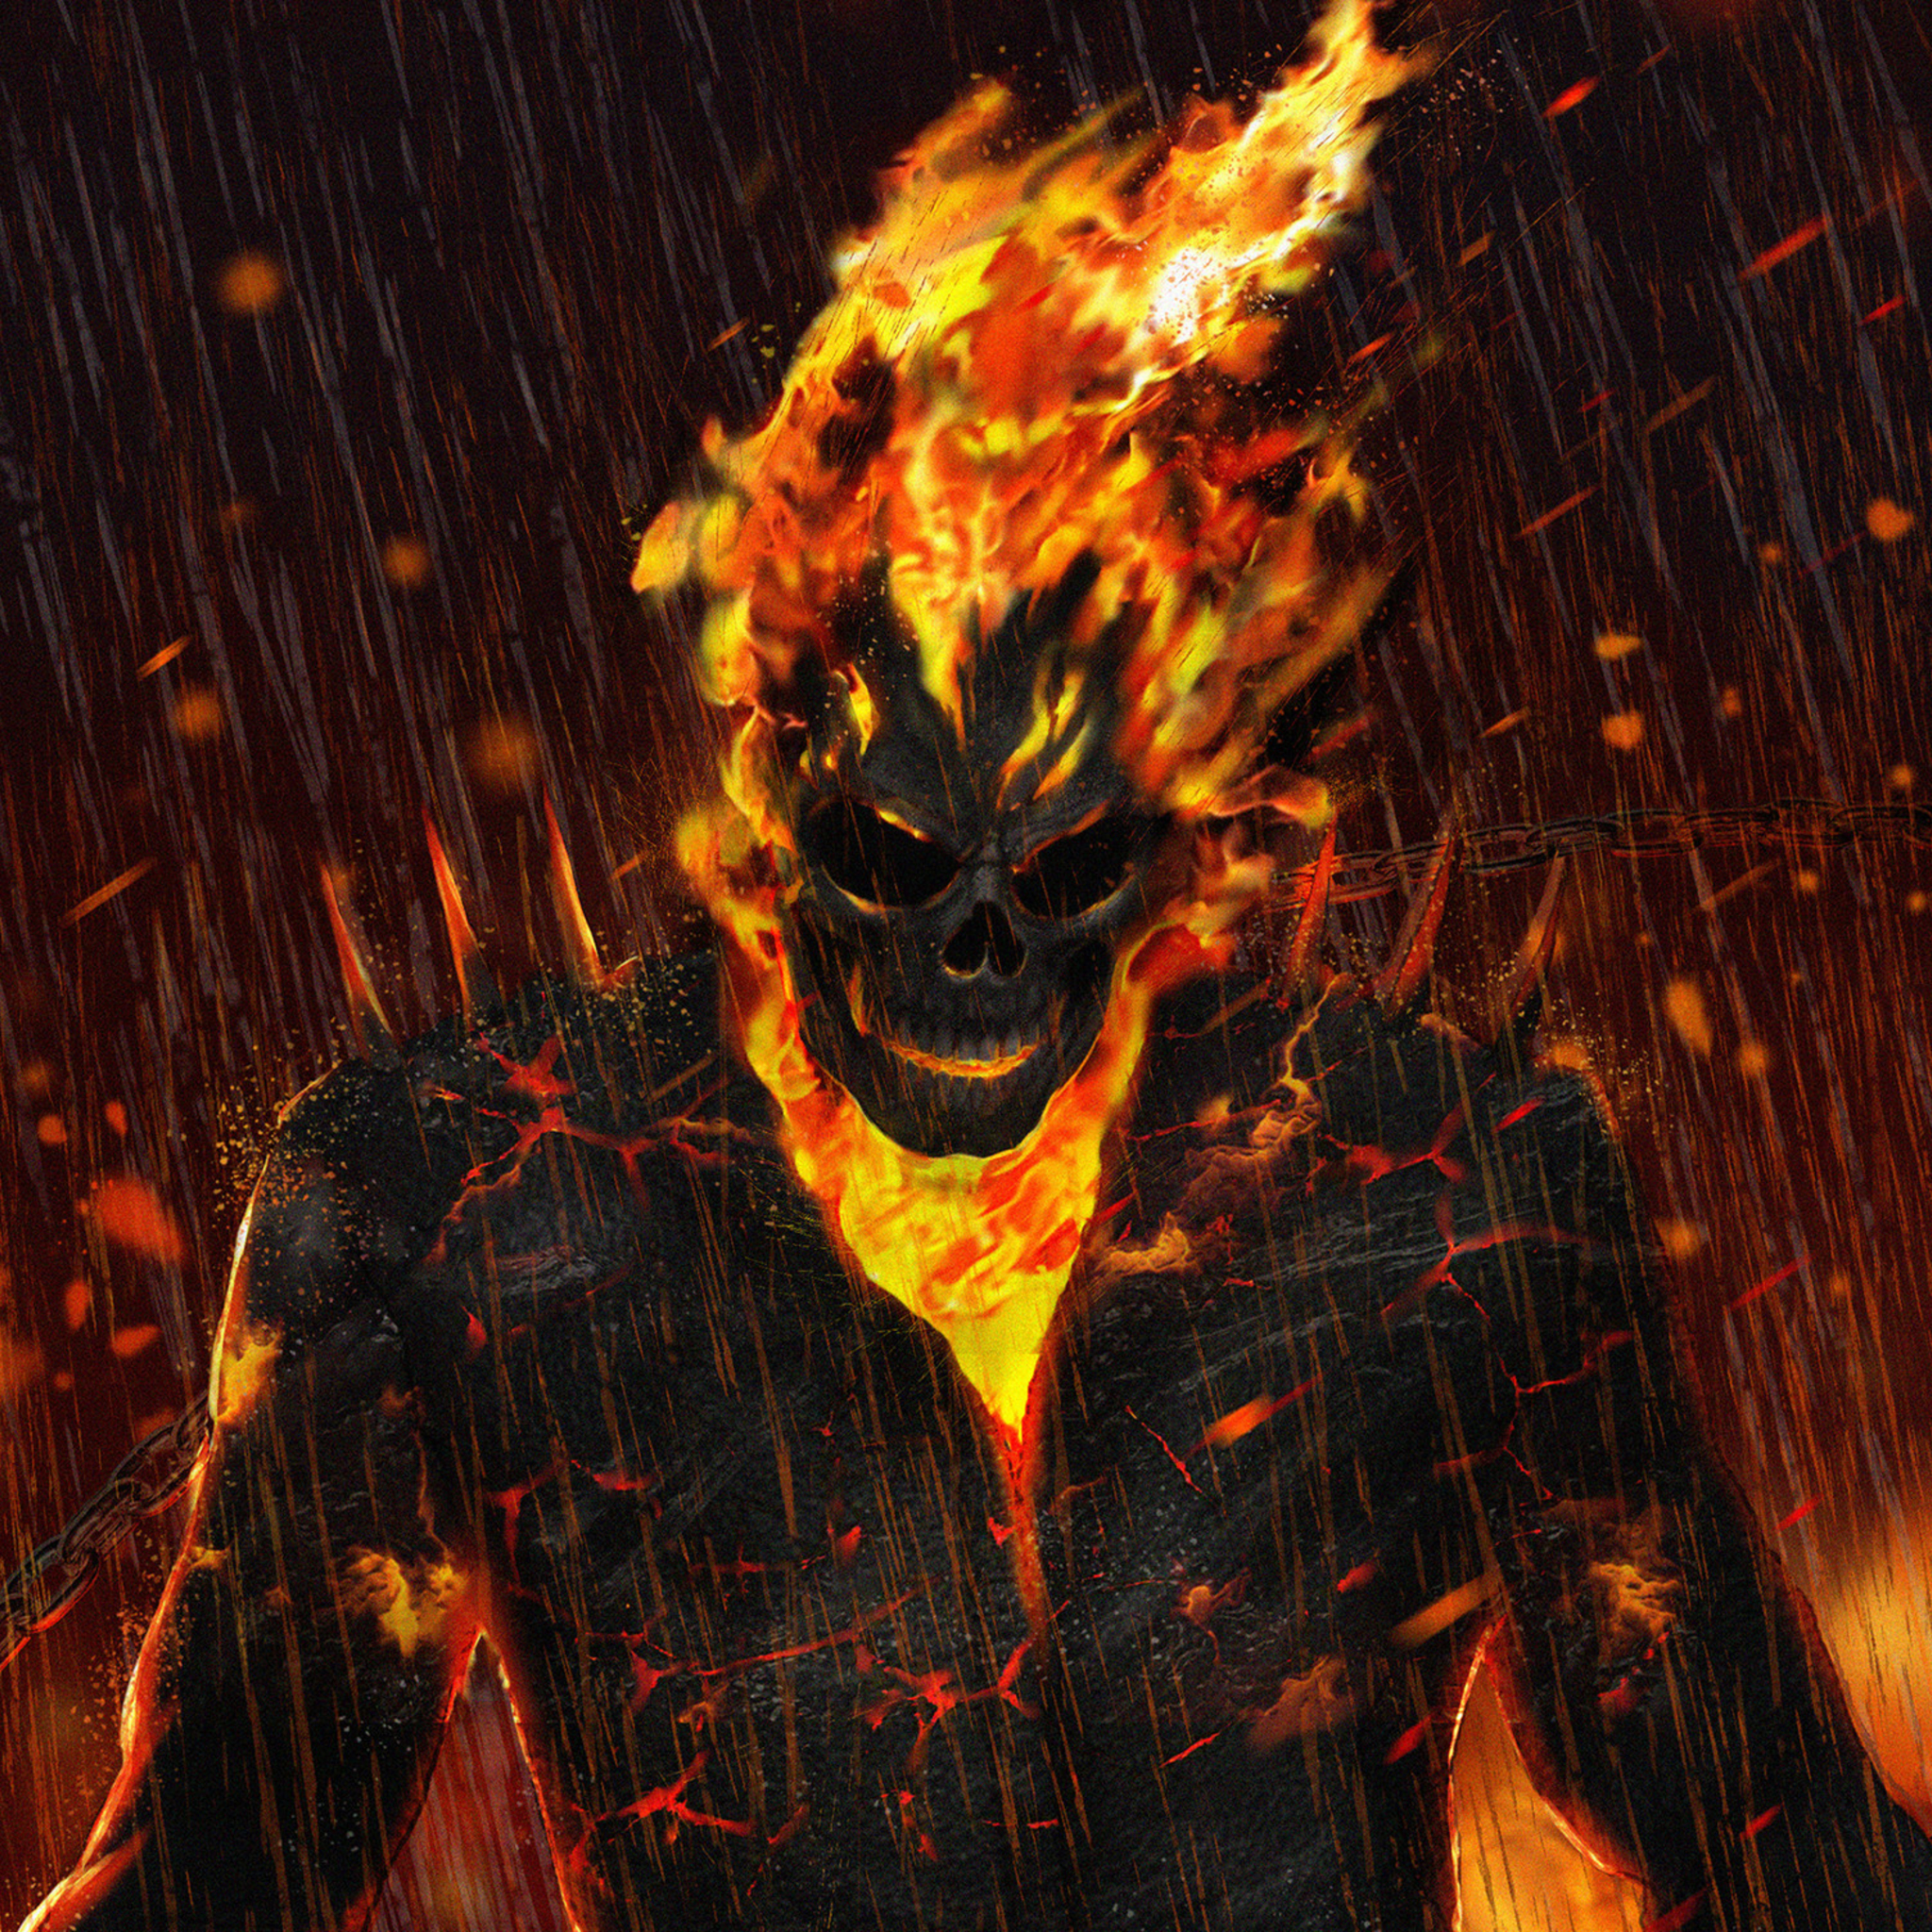 2048x2048 Ghost Rider Artwork HD Ipad Air HD 4k Wallpapers